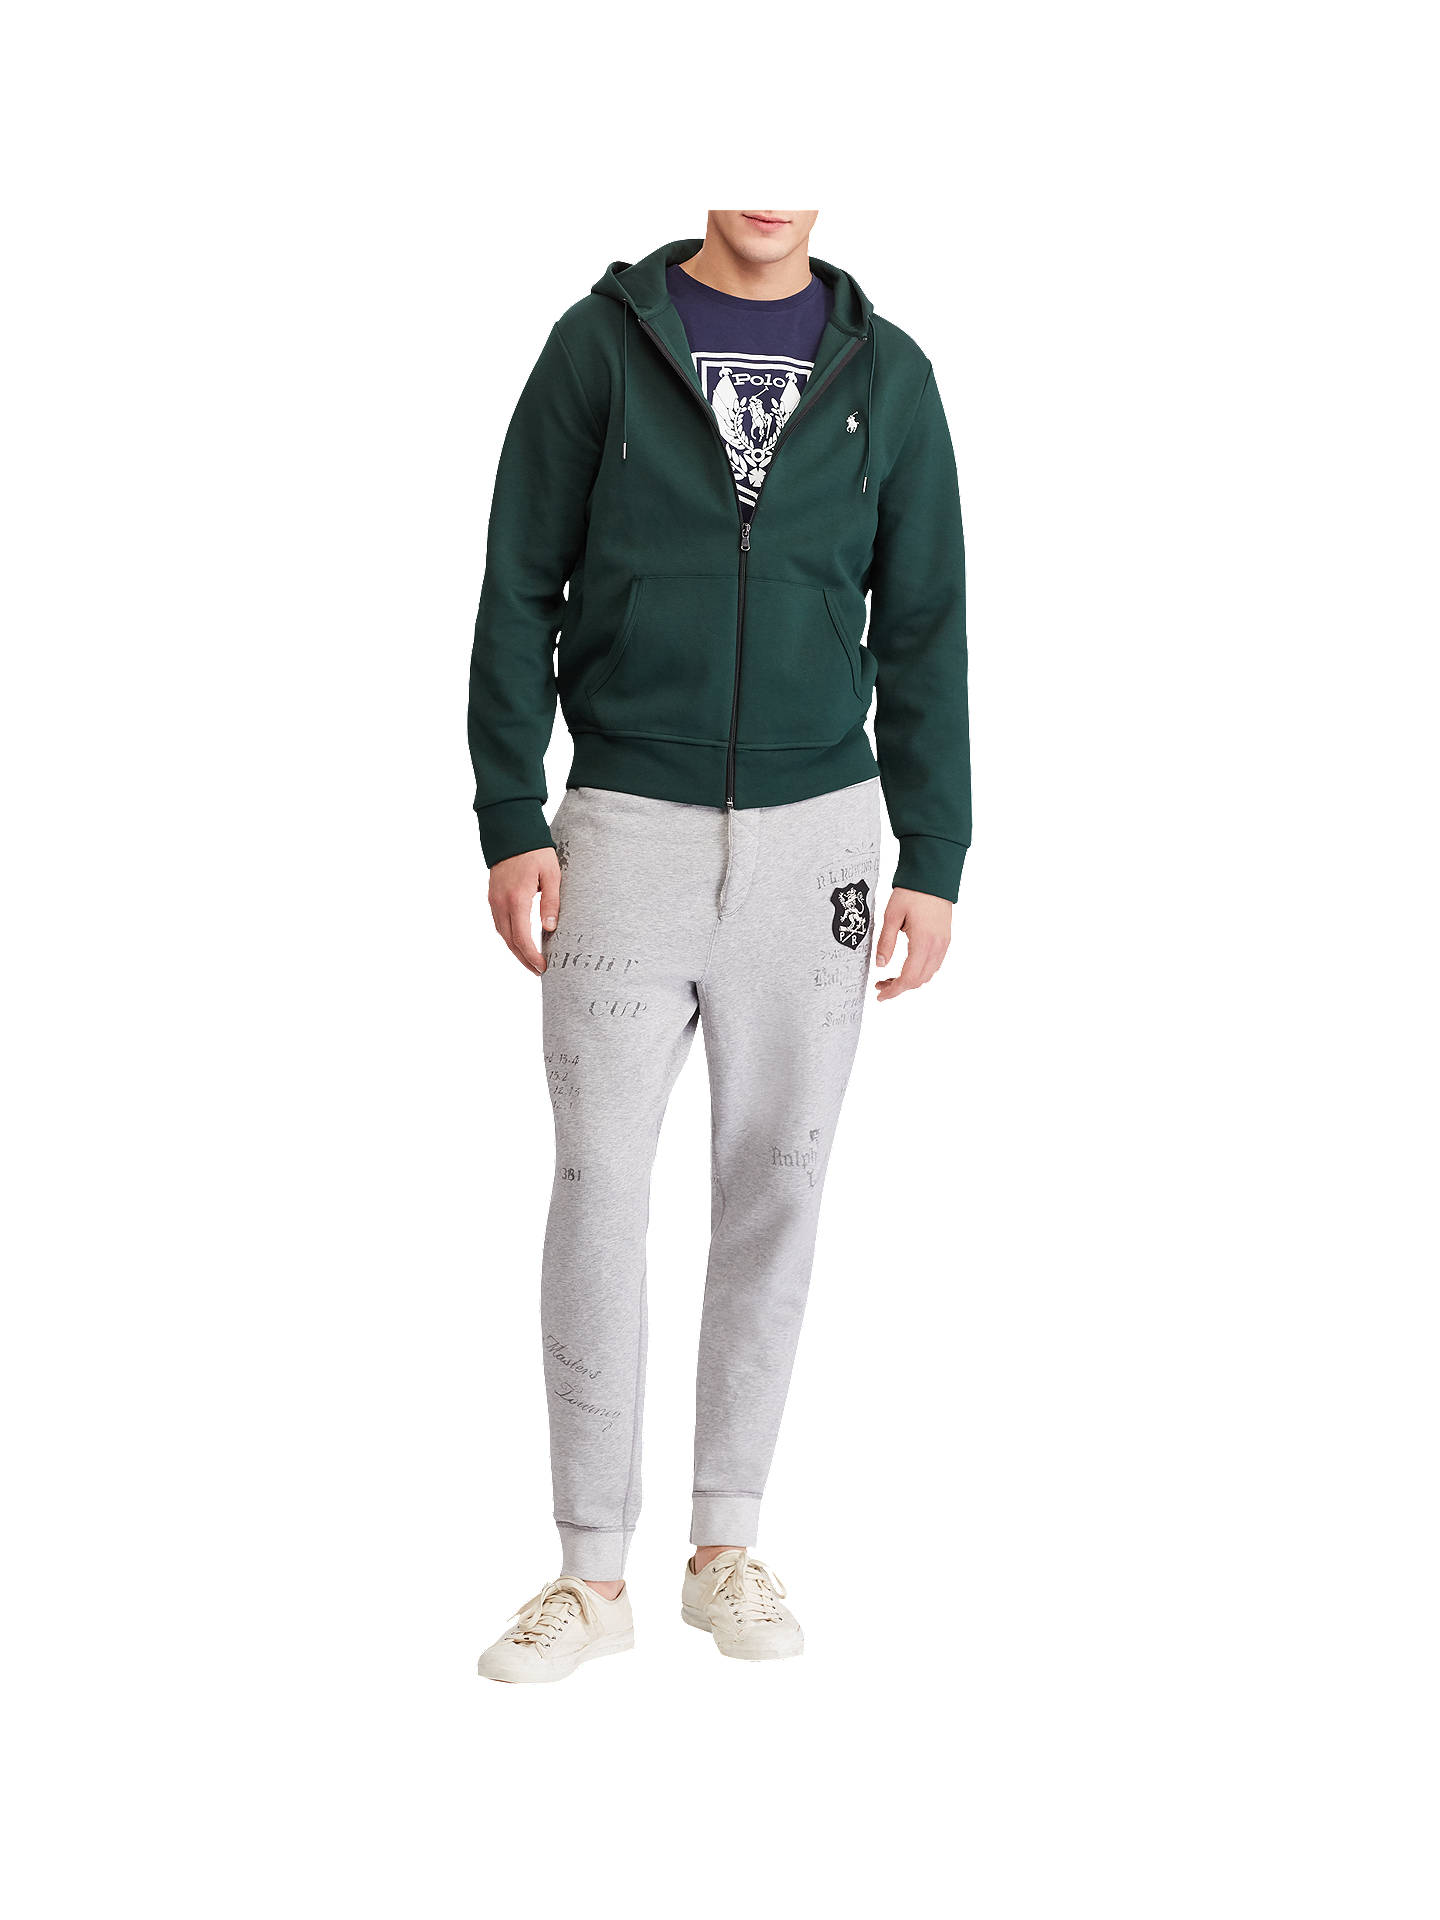 Buy Polo Ralph Lauren Long Sleeve Double Knit Hoodie, College Green, S Online at johnlewis.com